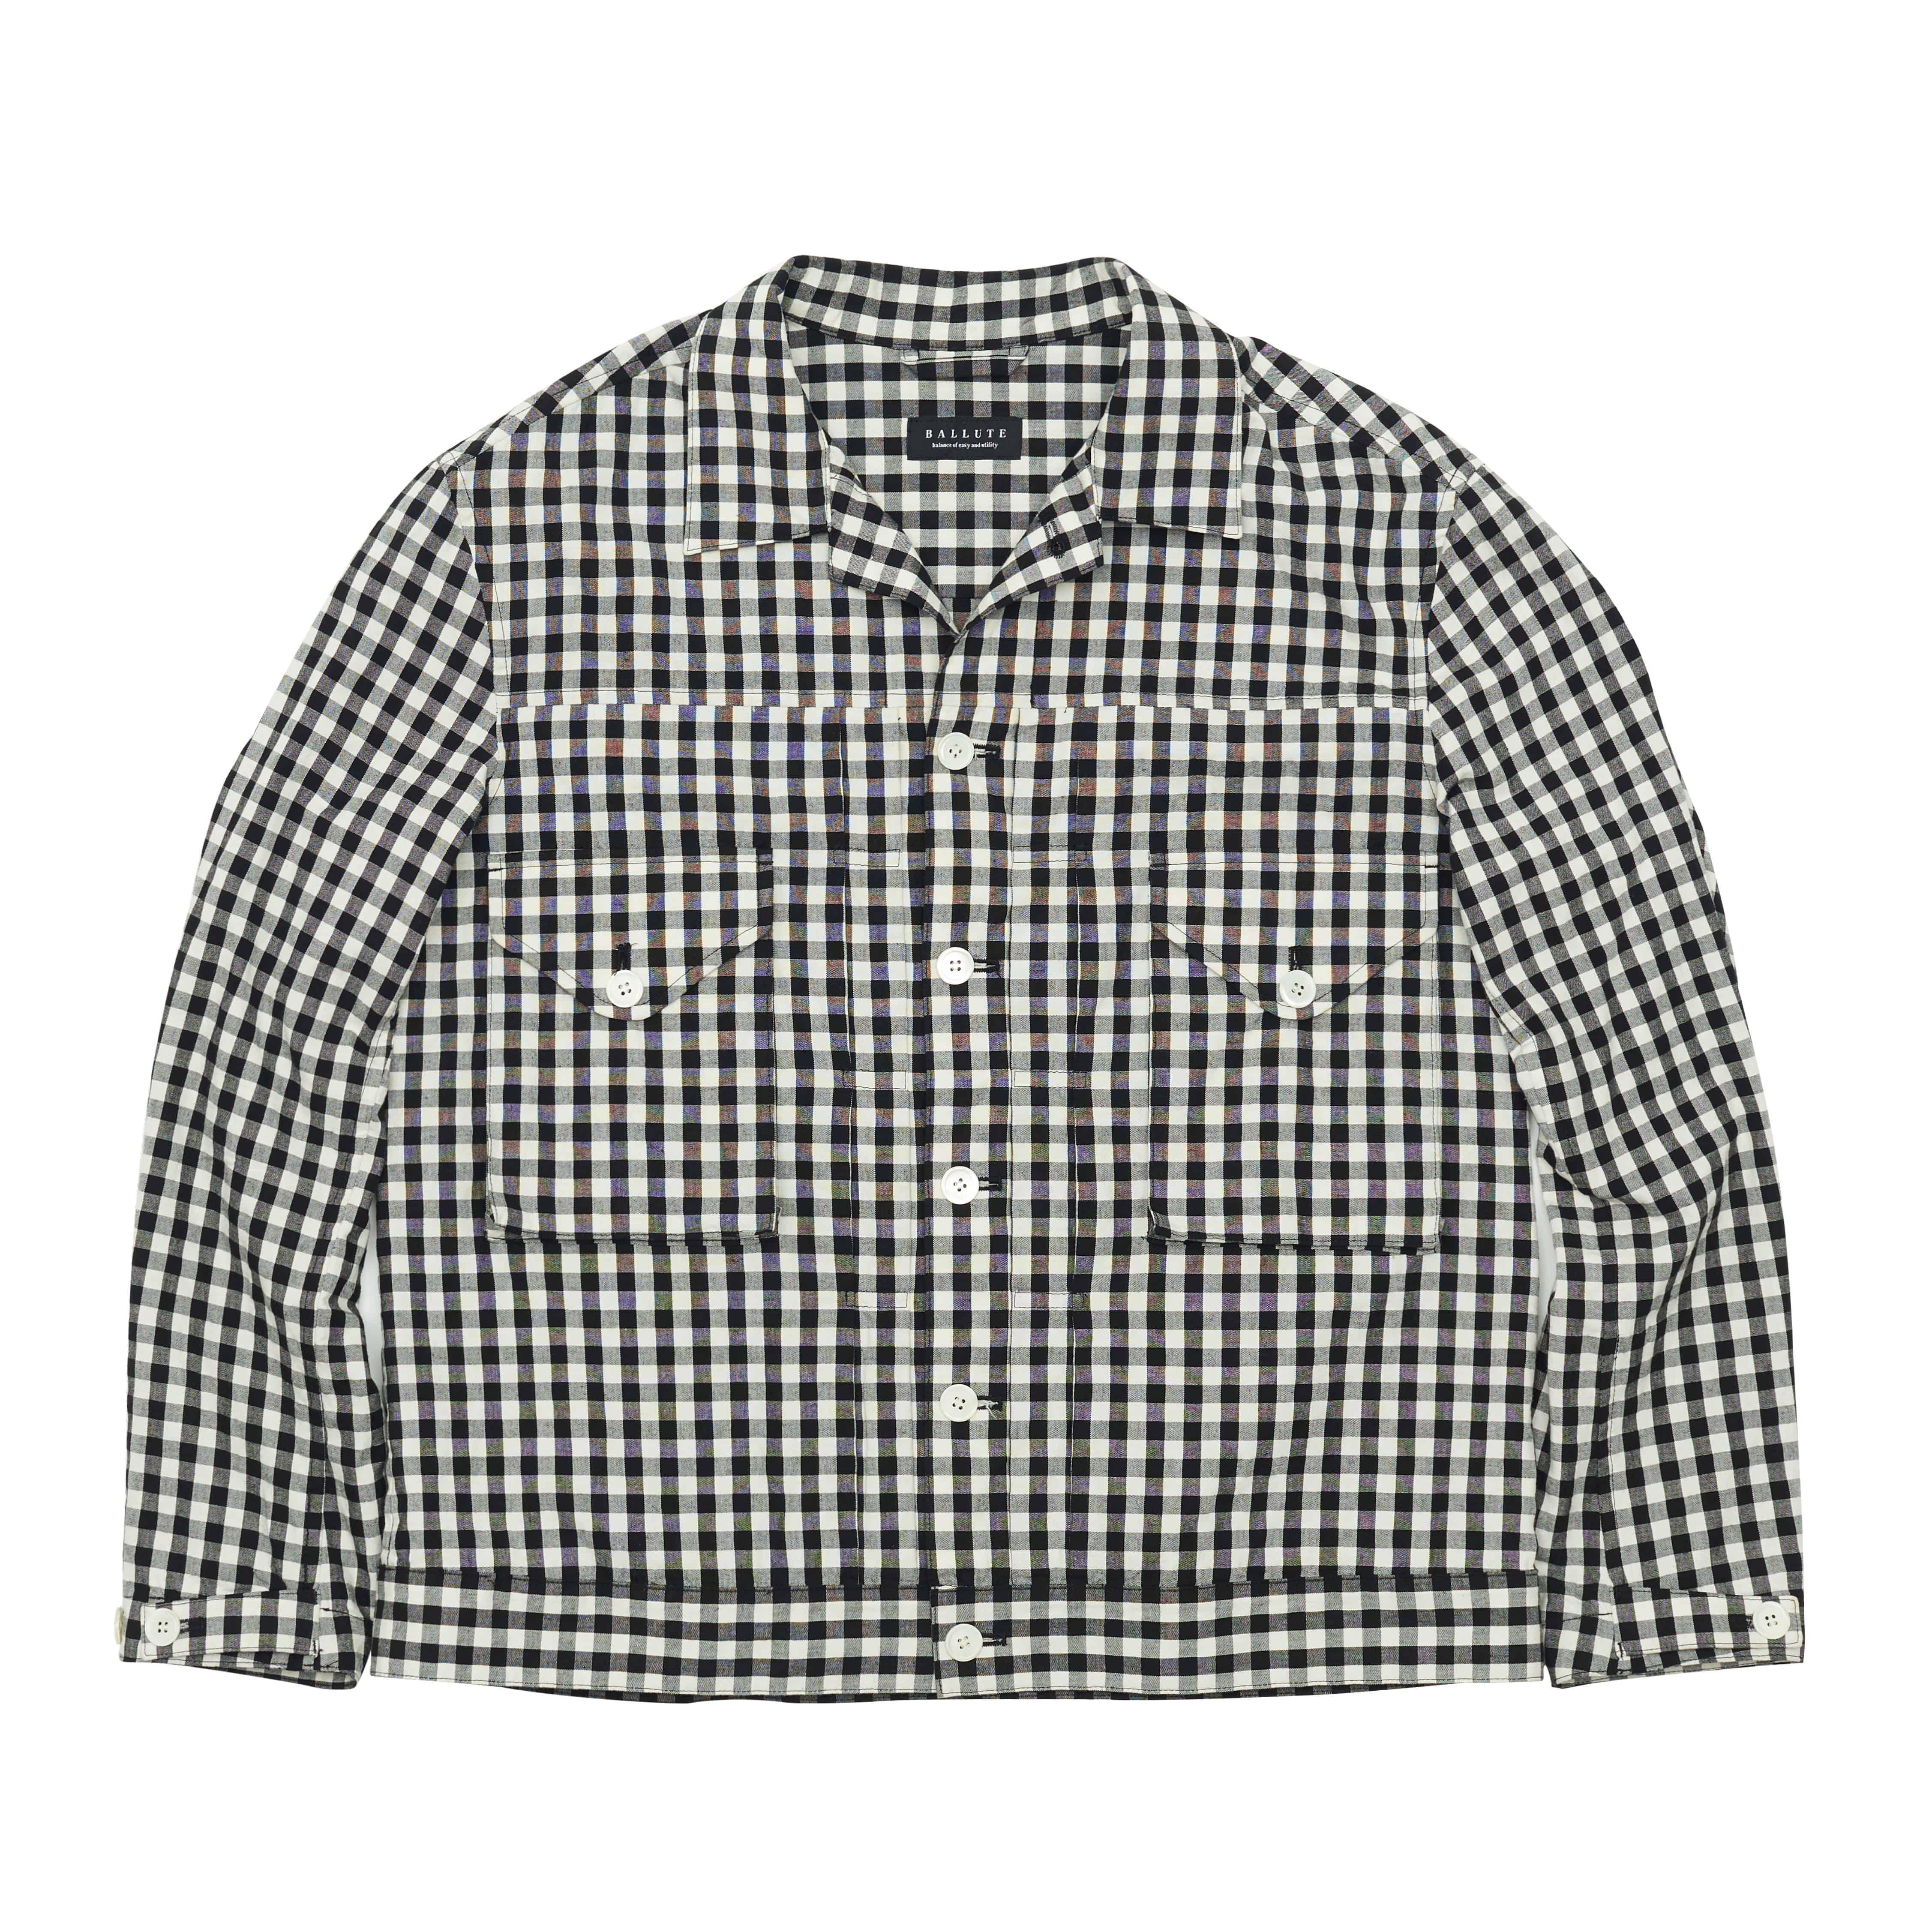 EASY TRUCKER SHIRT JACKET (GINGHAM CHECK)